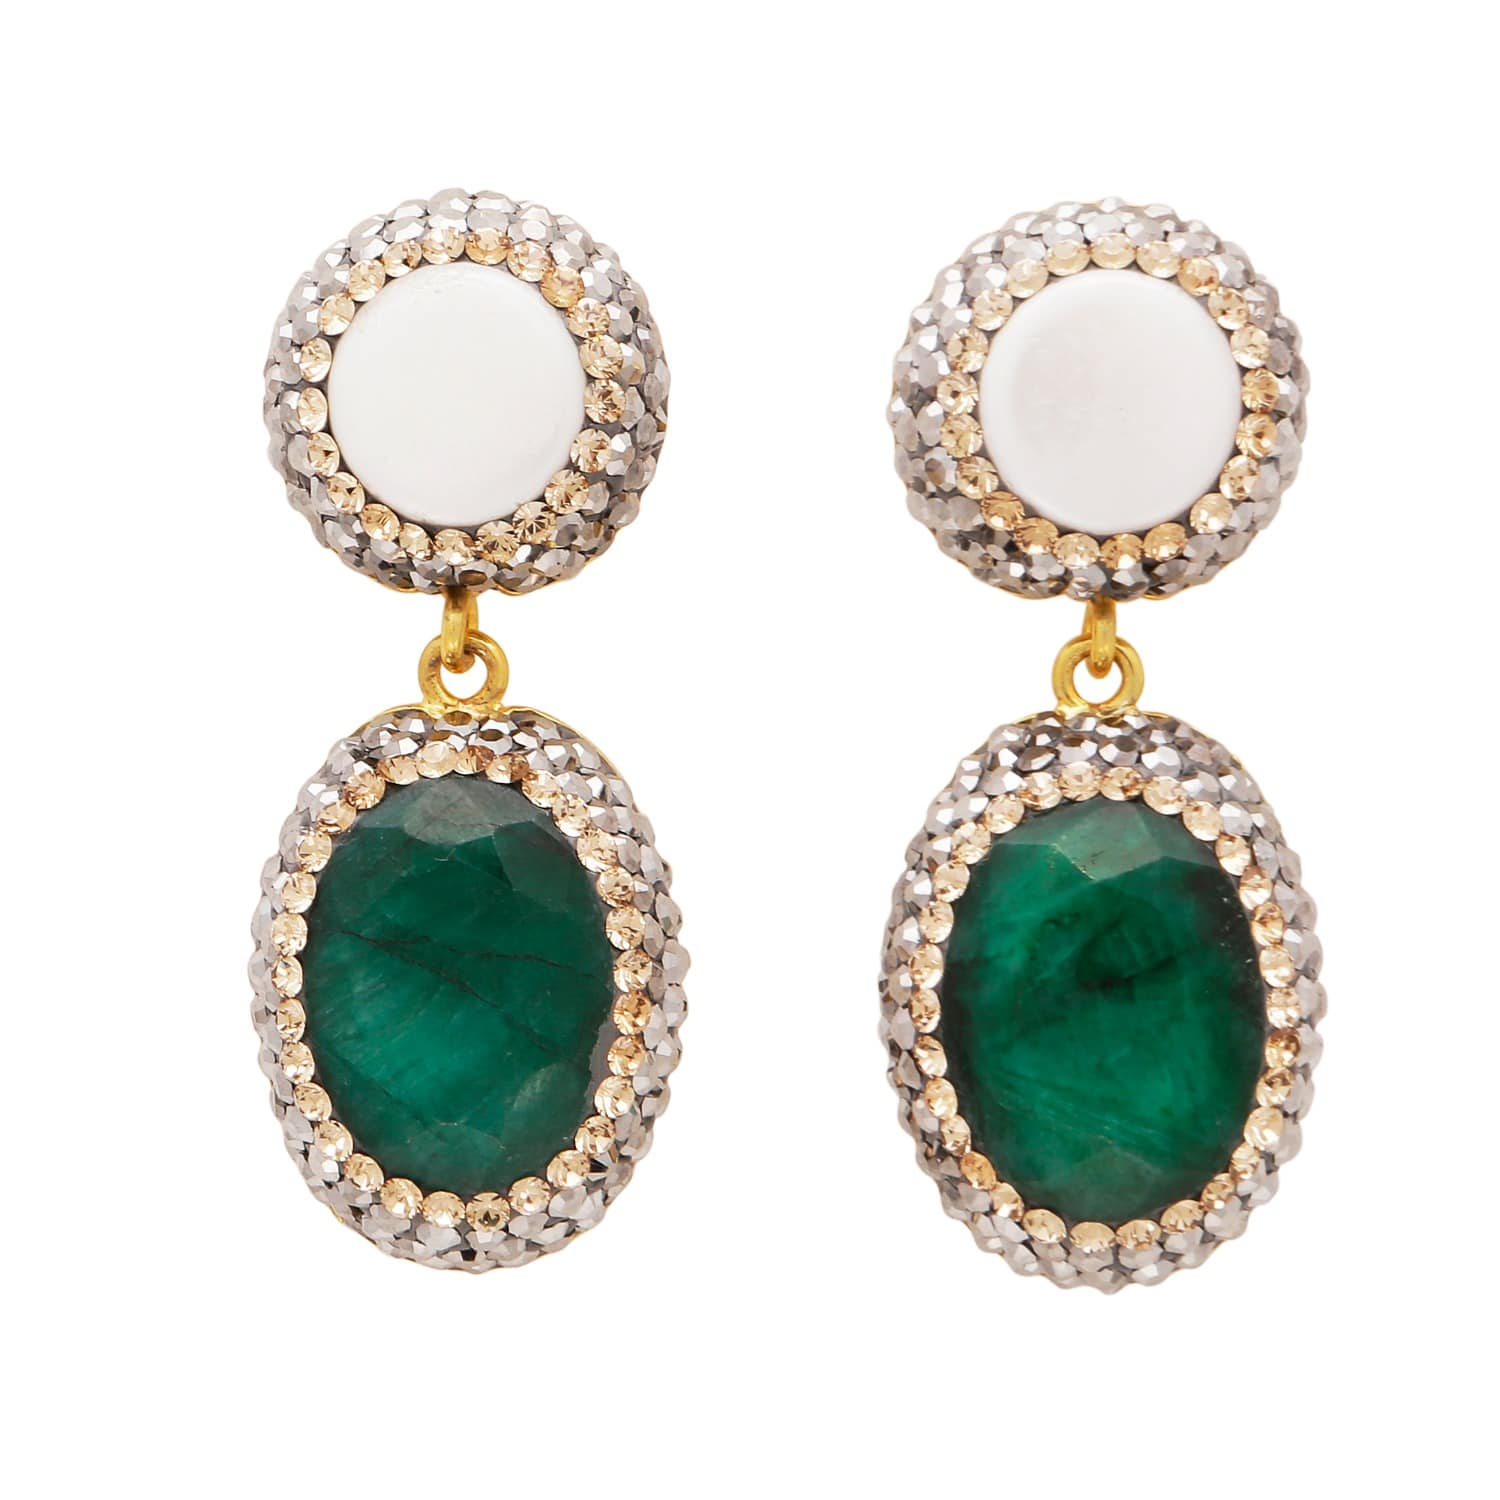 70e60b314f13b Mother Of Pearl and Emerald Corundum Drop Earrings by Carousel Jewels